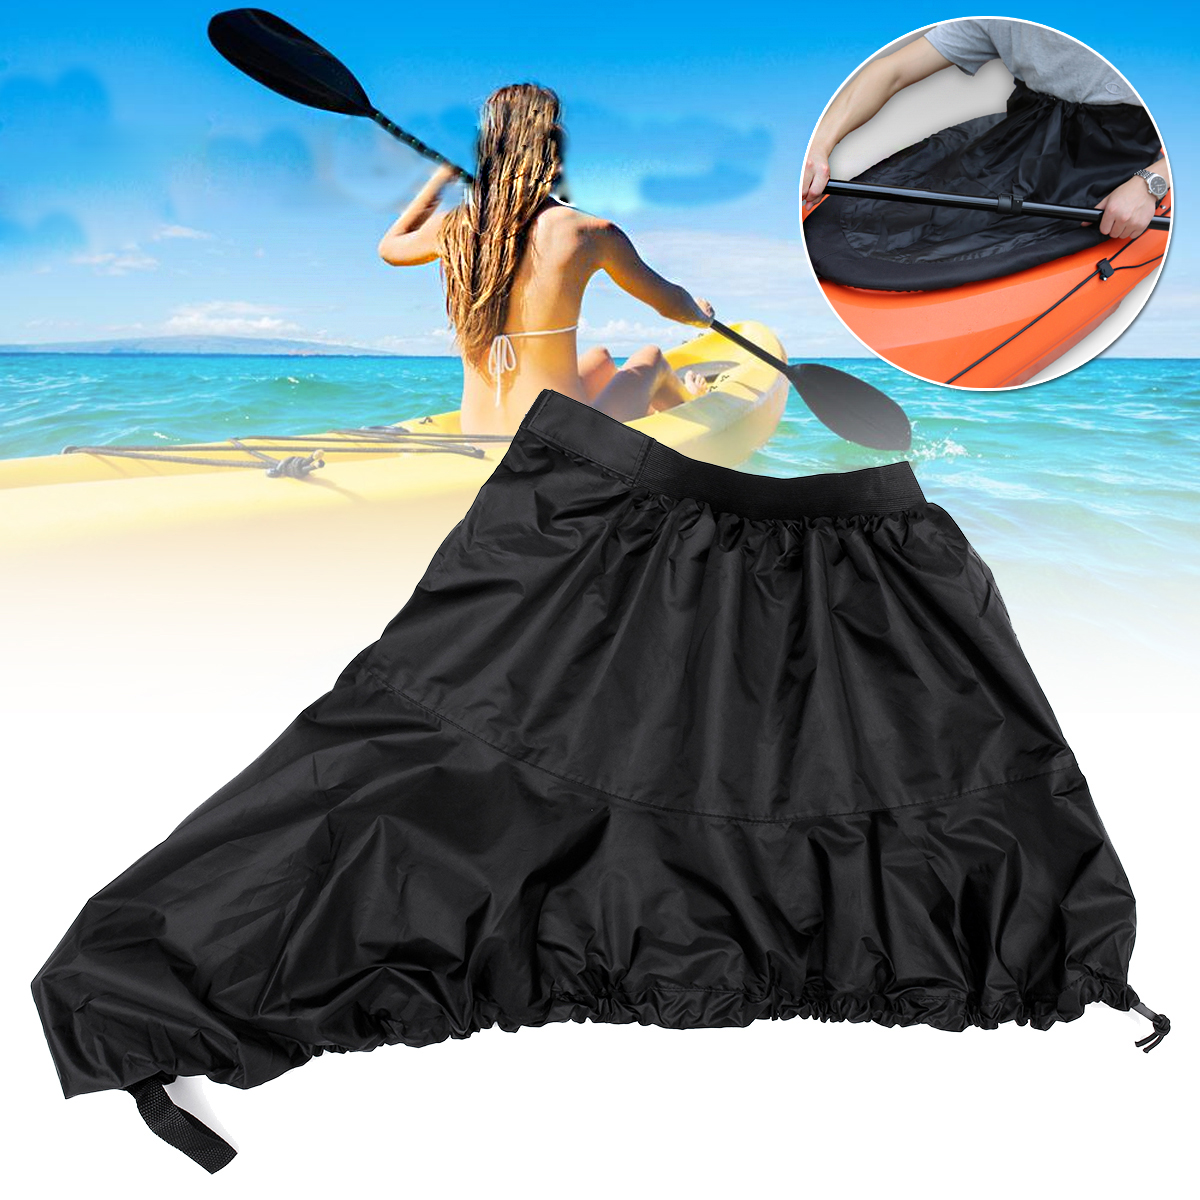 Kayak Spray Skirt Waterproof Cover Boat Canoe Cover Oxf